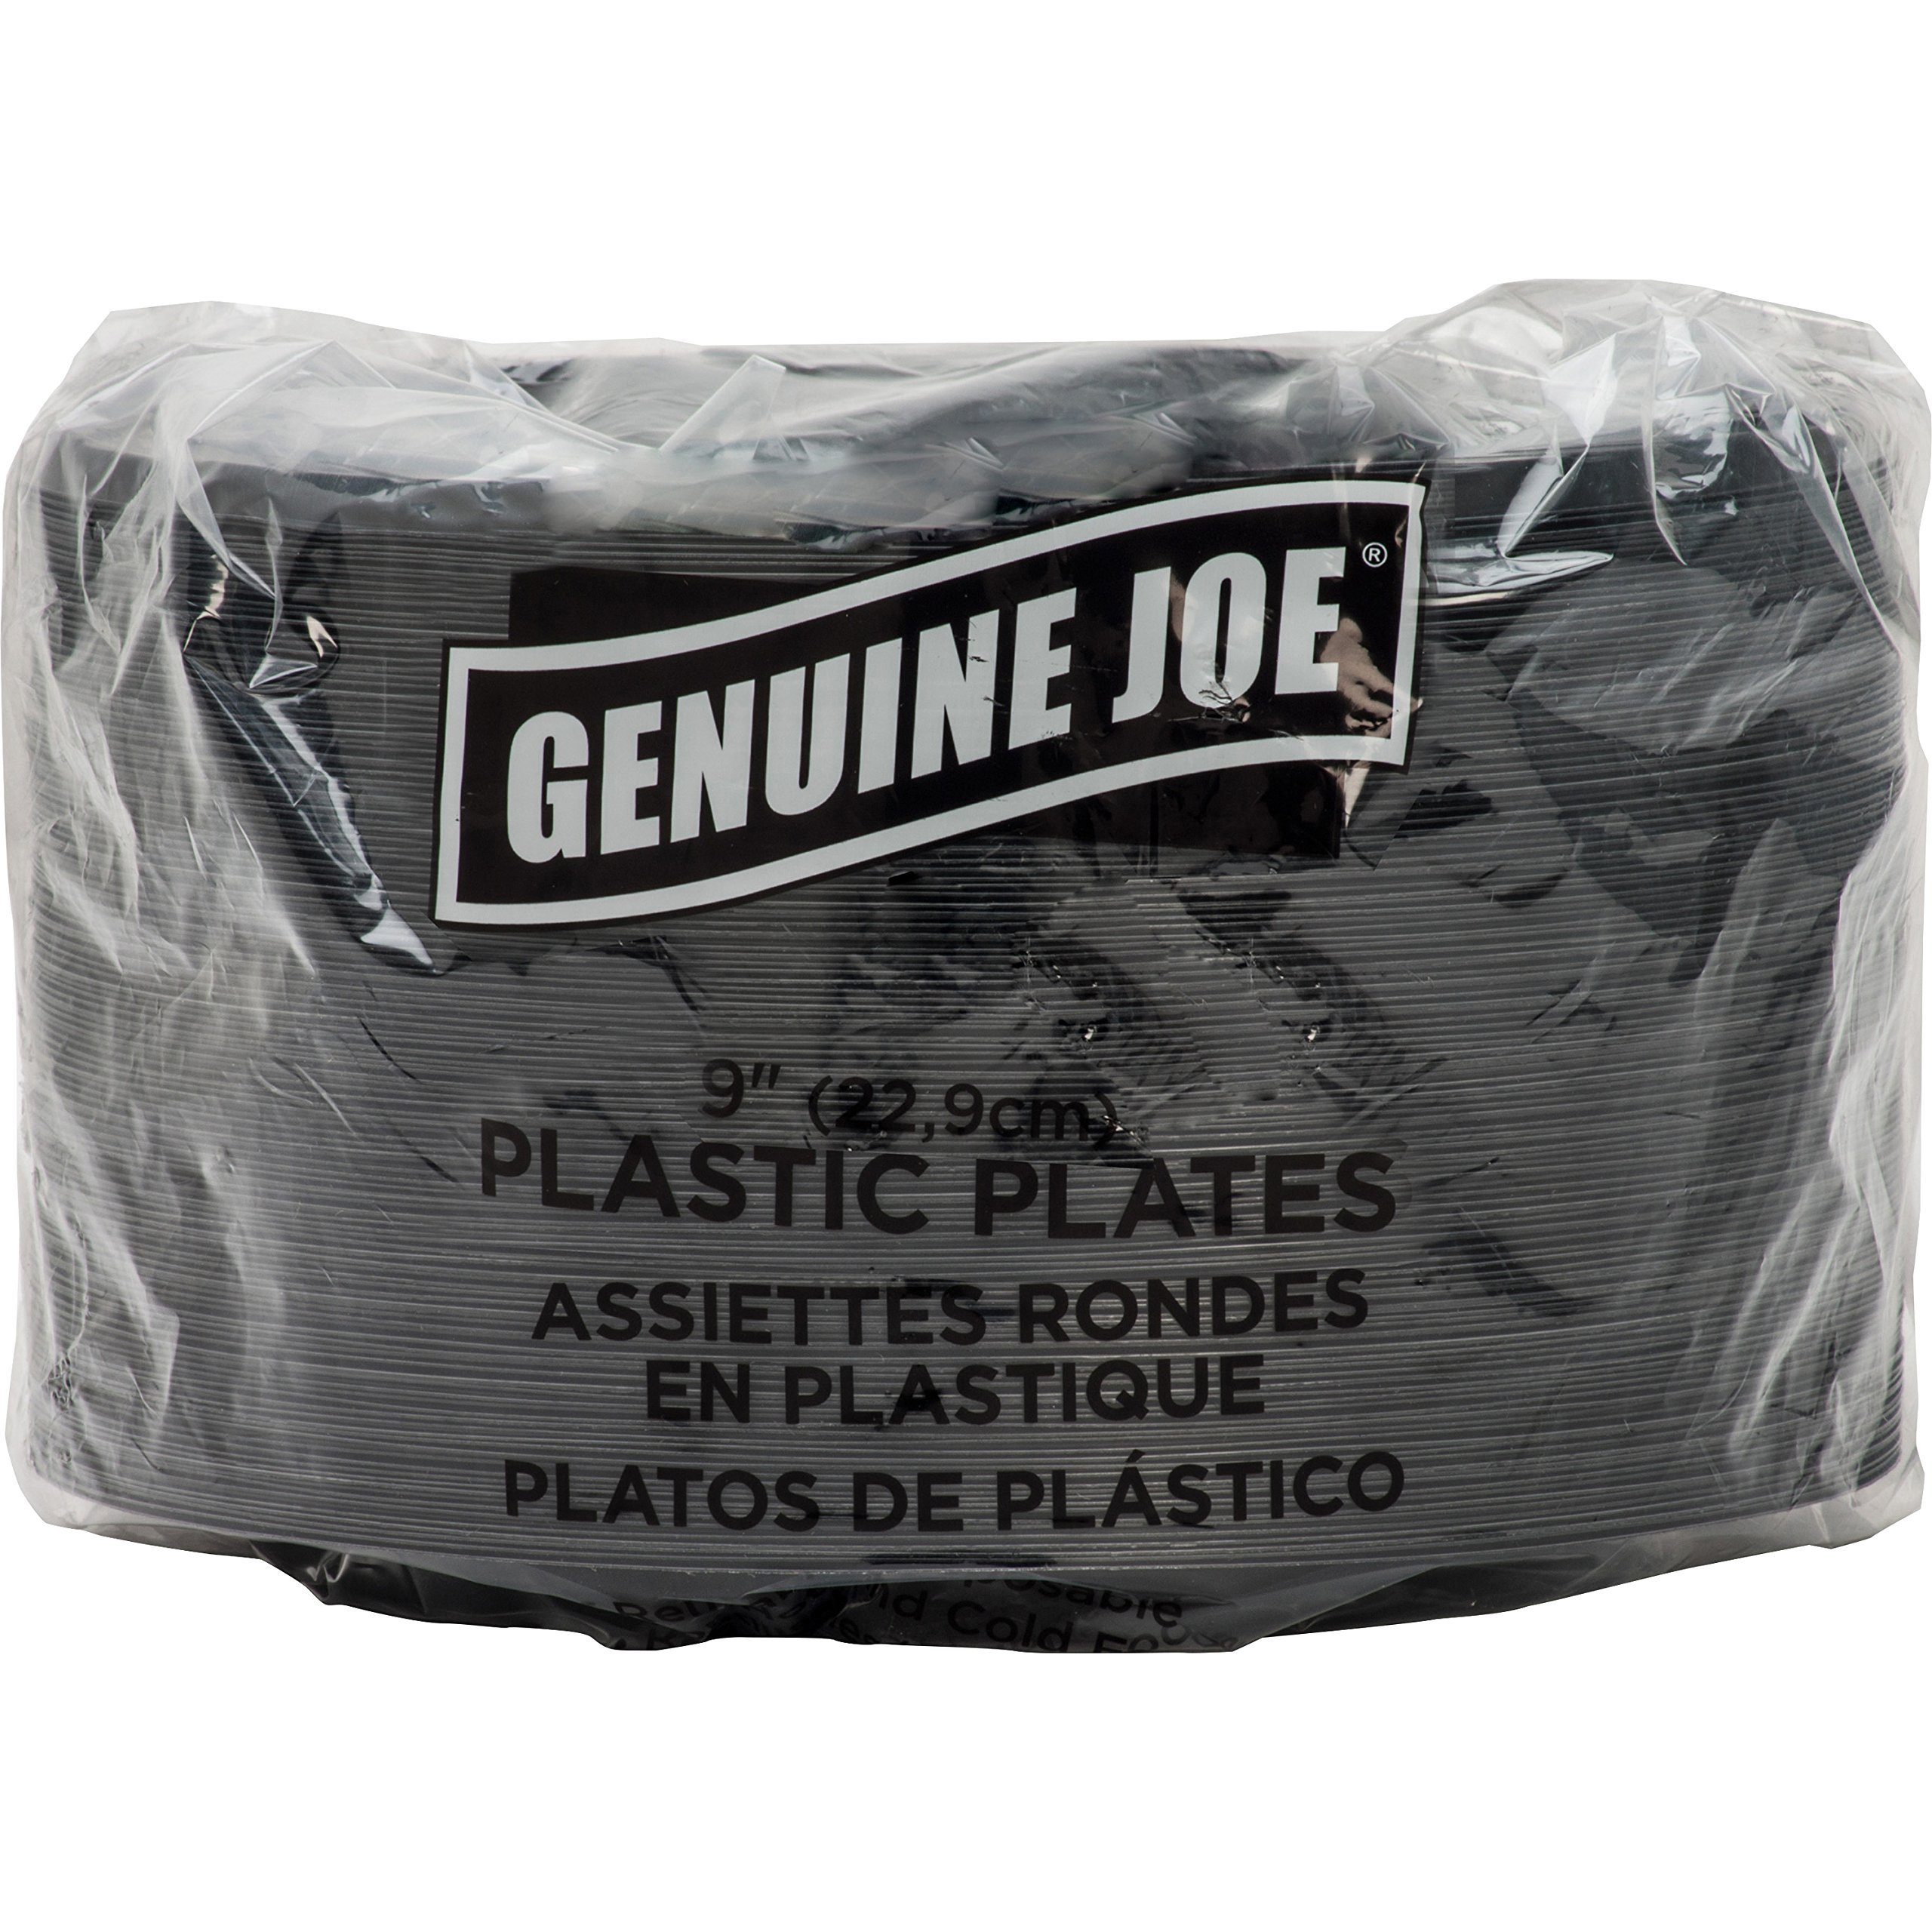 Genuine Joe GJO10429 Plastic Round Plate, 9'' Diameter, Black (Pack of 125) by Genuine Joe